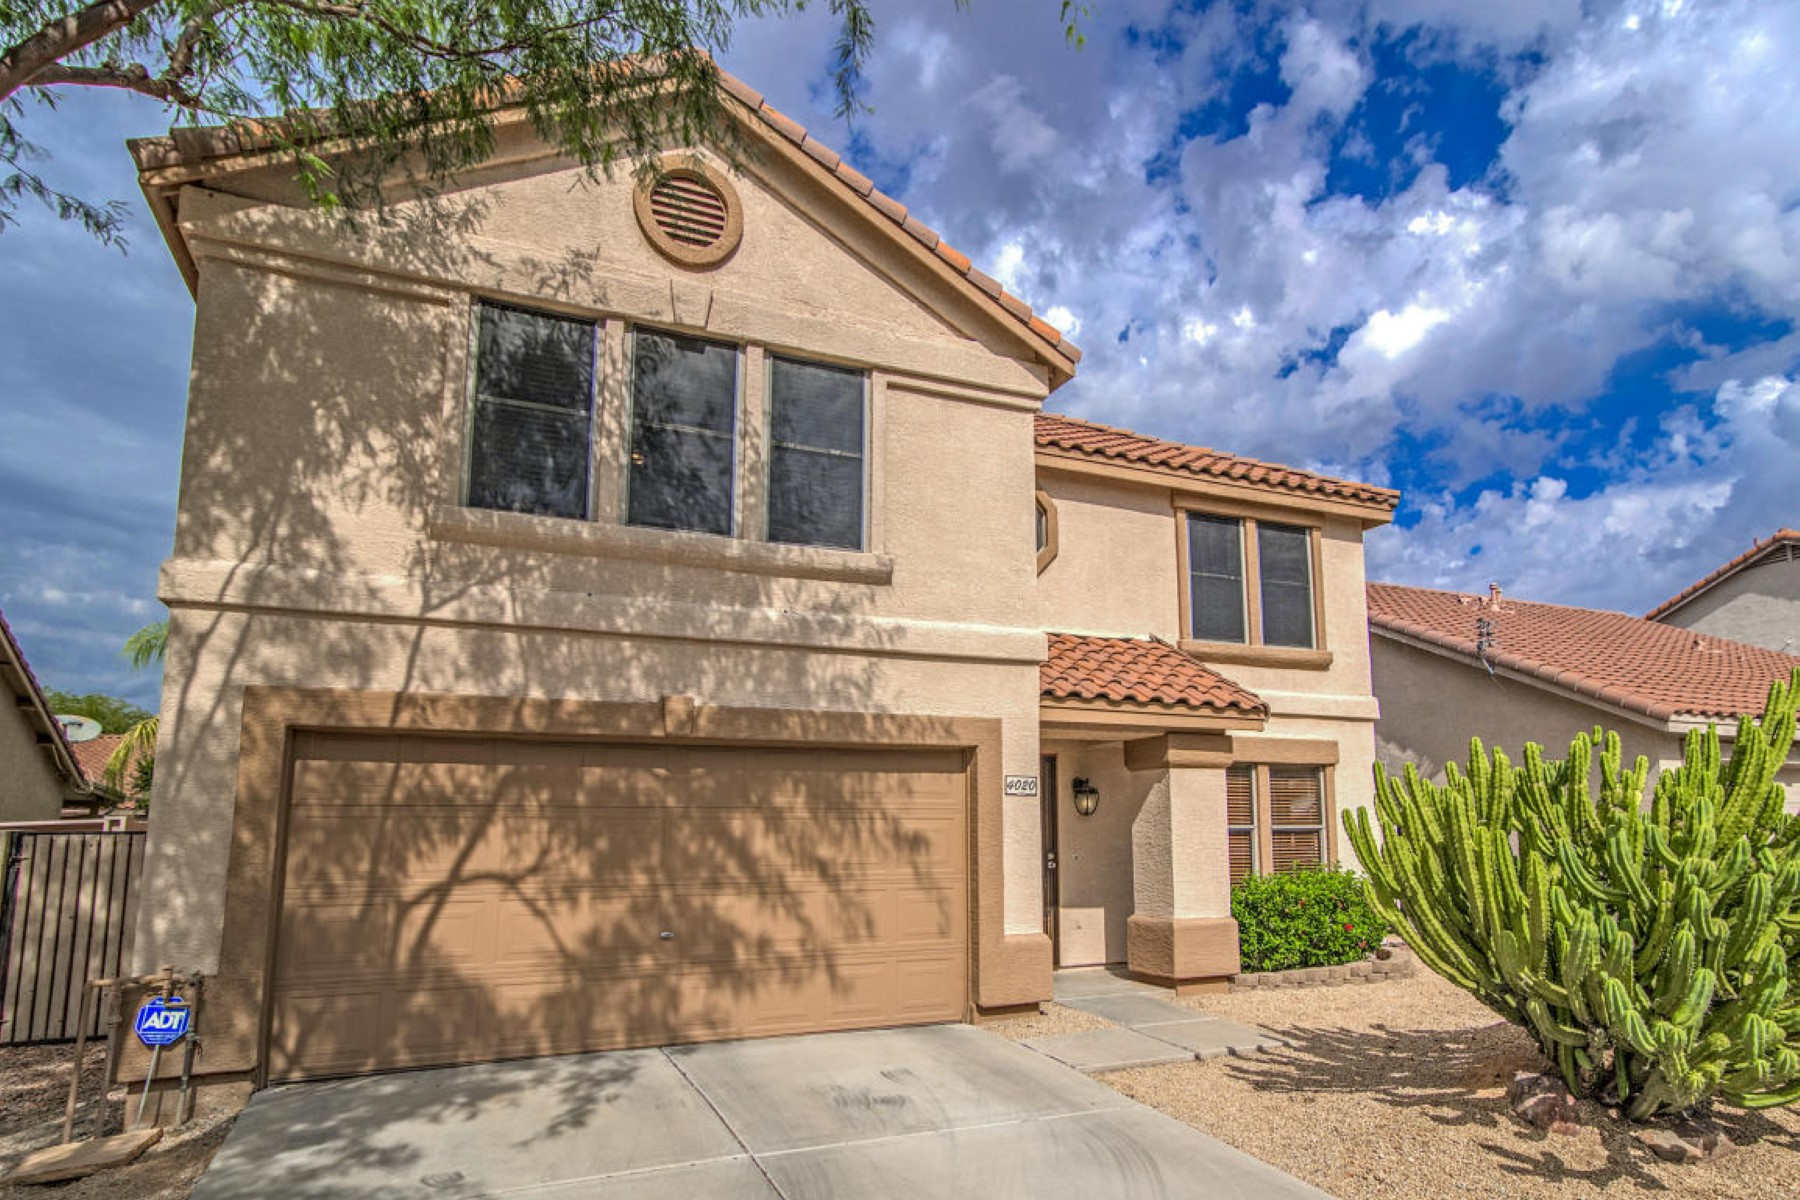 獨棟家庭住宅 為 出售 在 Incredible remodel in the wonderful community of Tatum Highlands 4020 E HIDE TRL Phoenix, 亞利桑那州 85050 美國